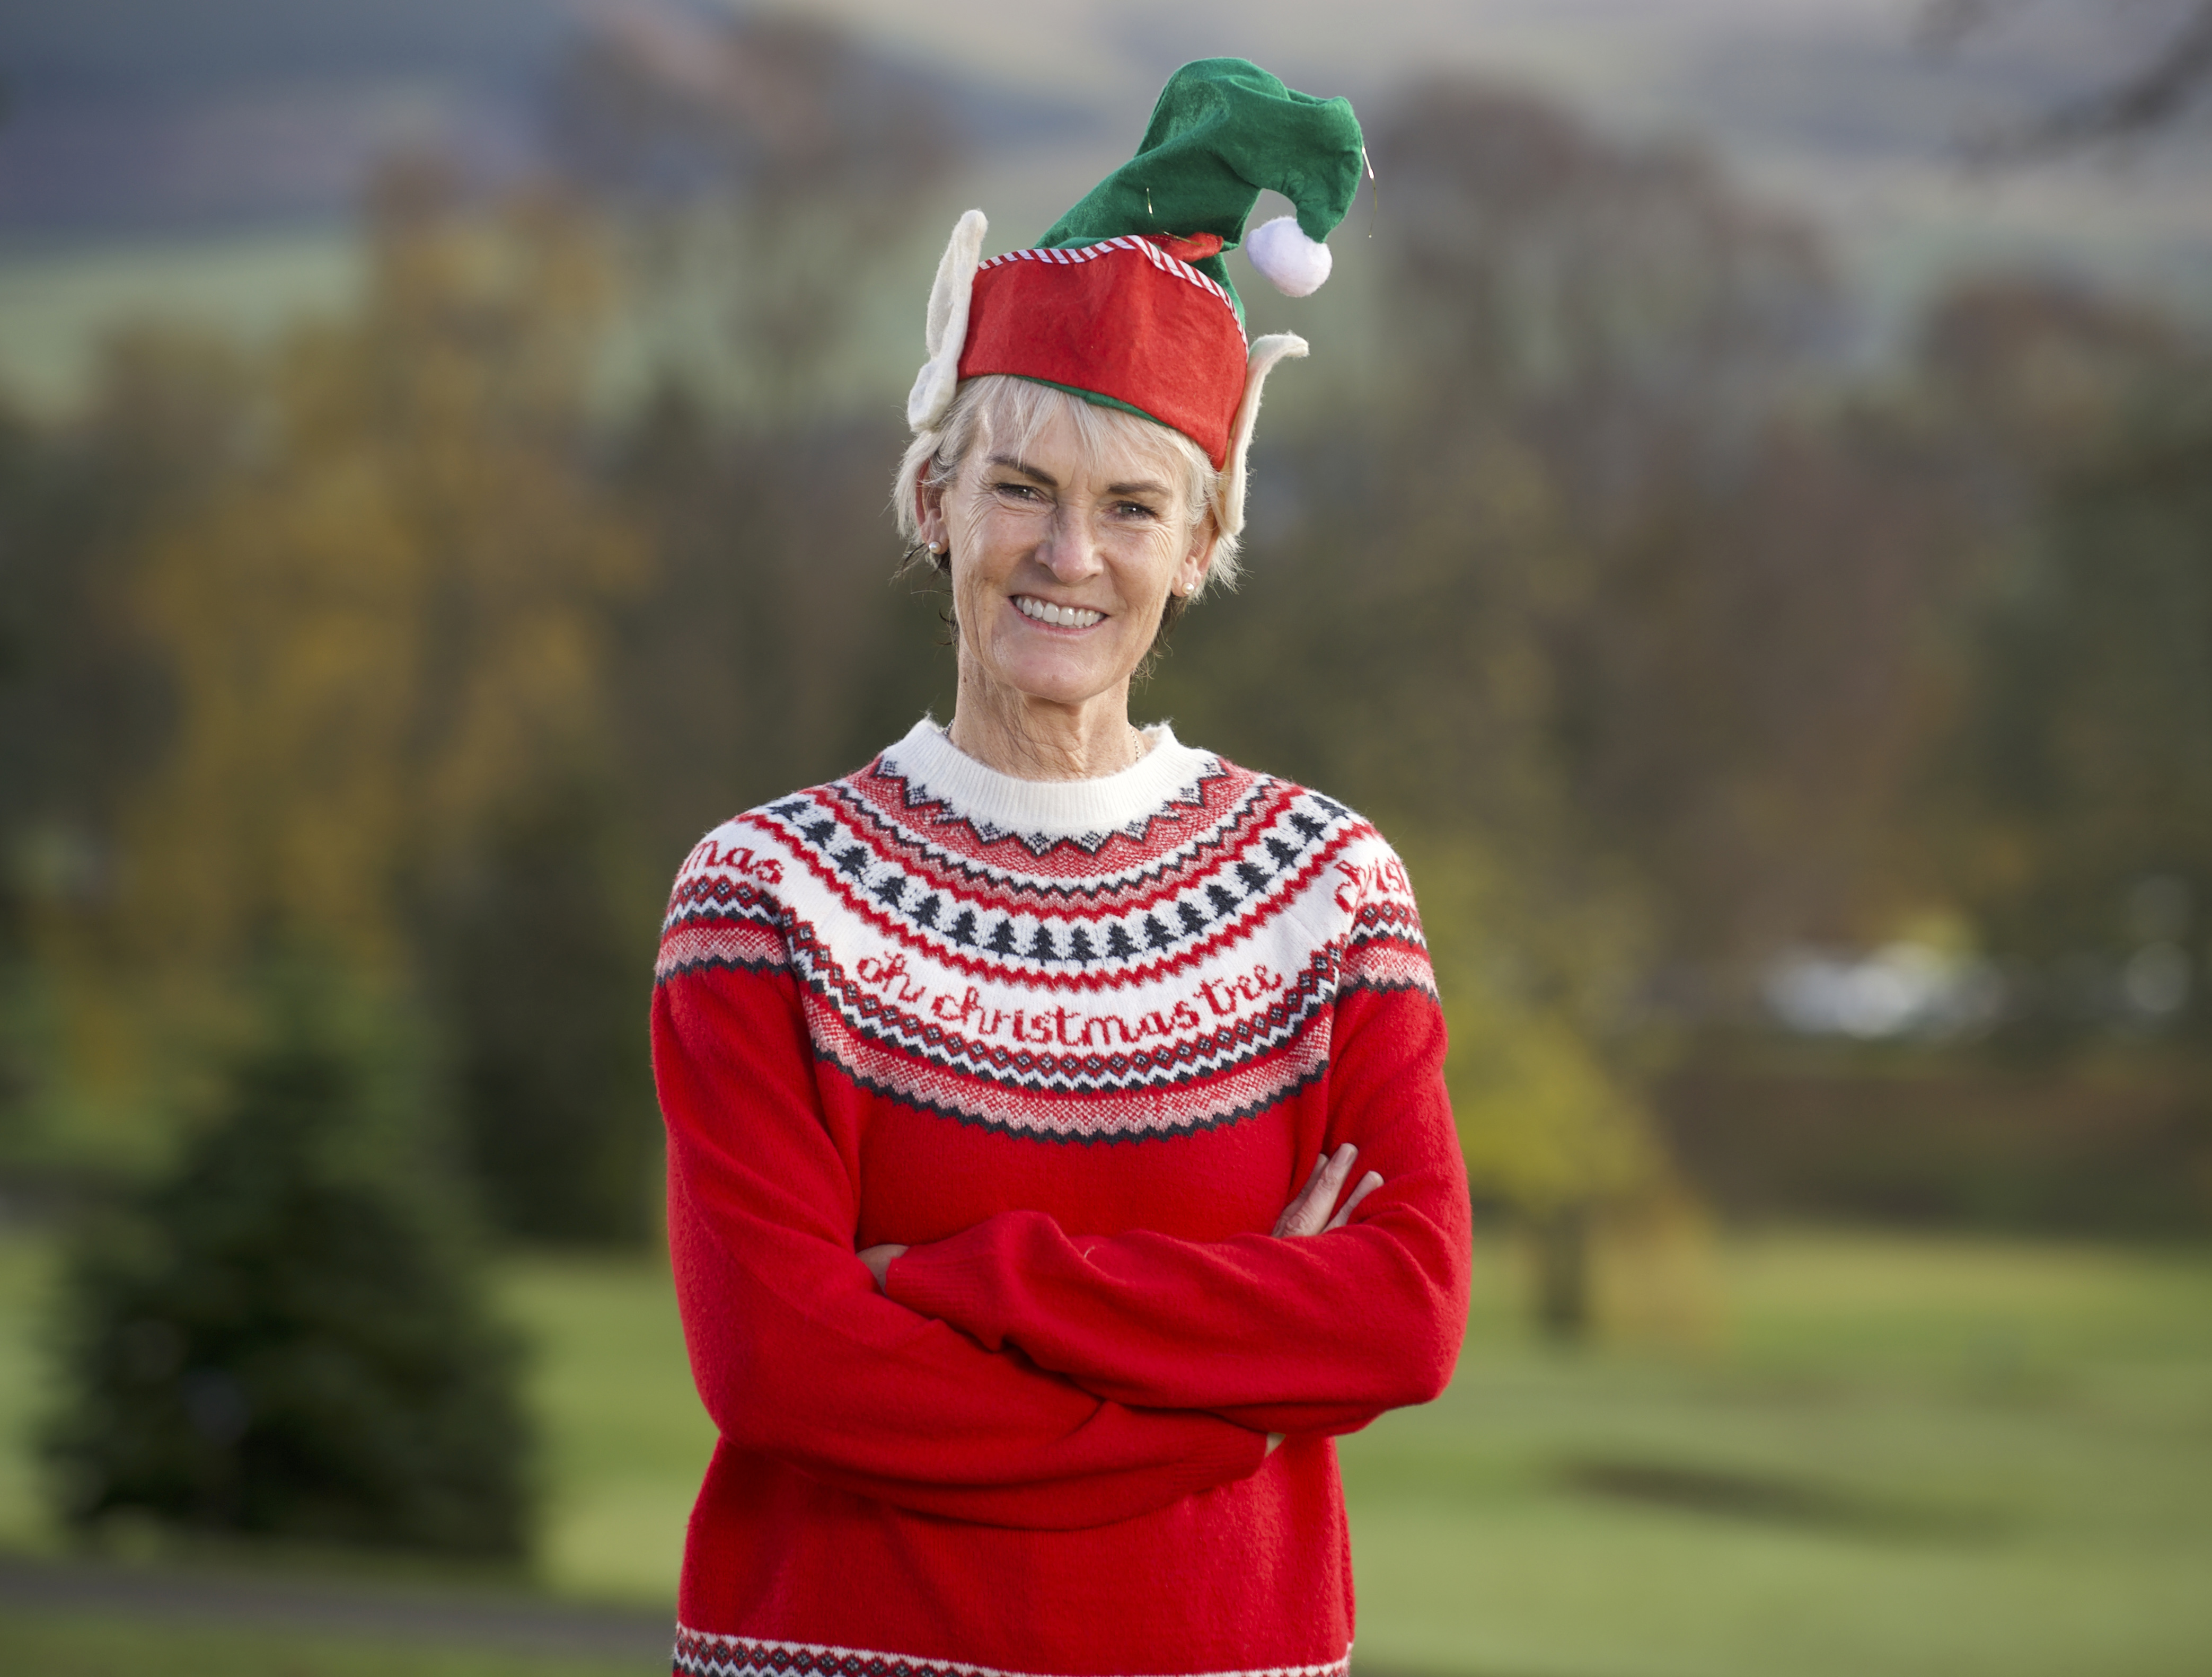 Judy Murray with a Christmas jumper for Save the Children Christmas jumper appeal.